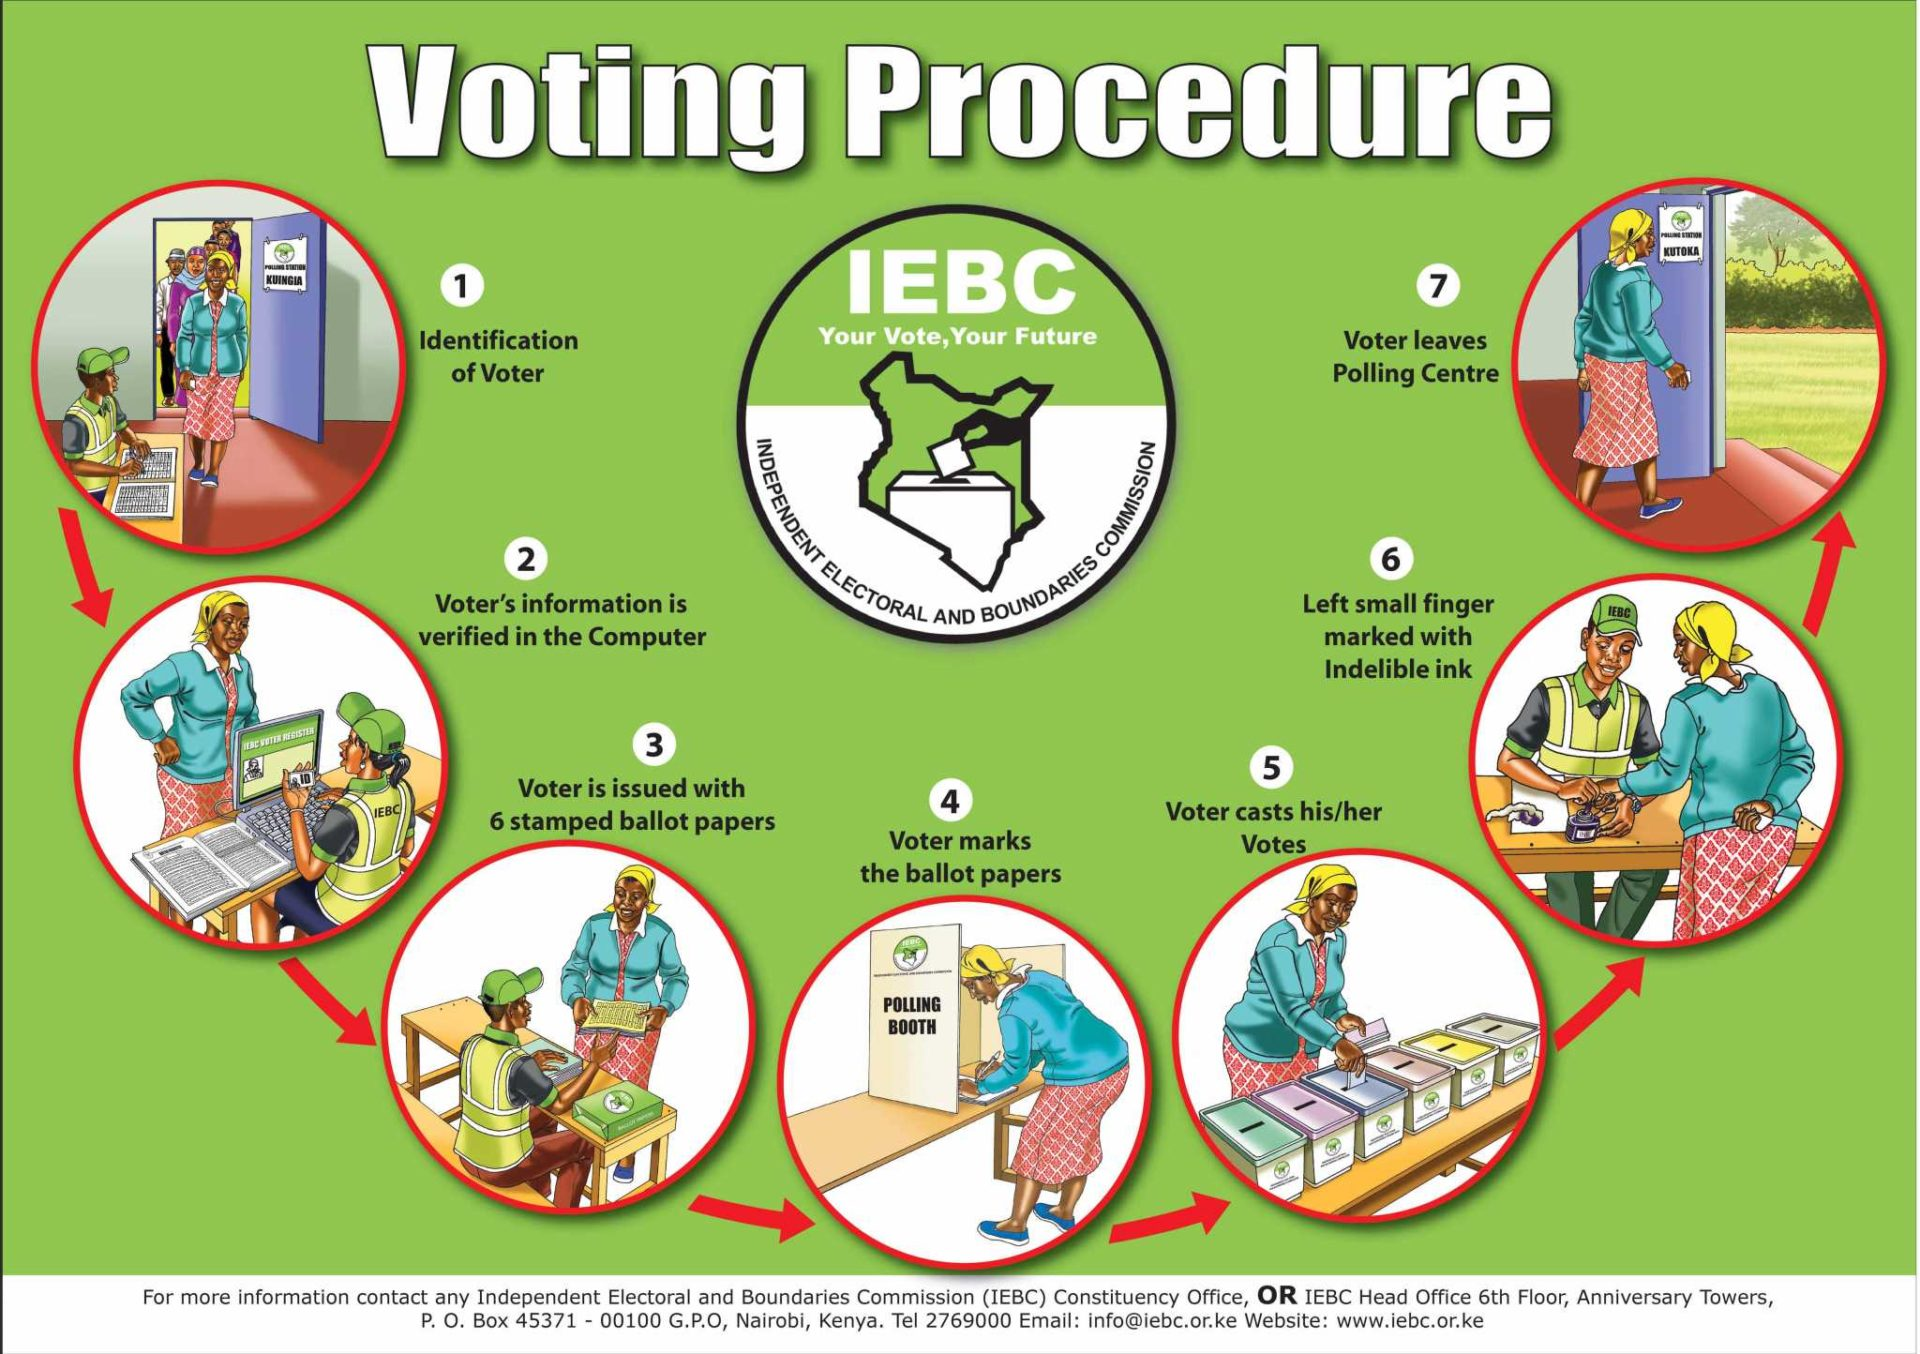 How To Vote in The Kenya General Elections 2017